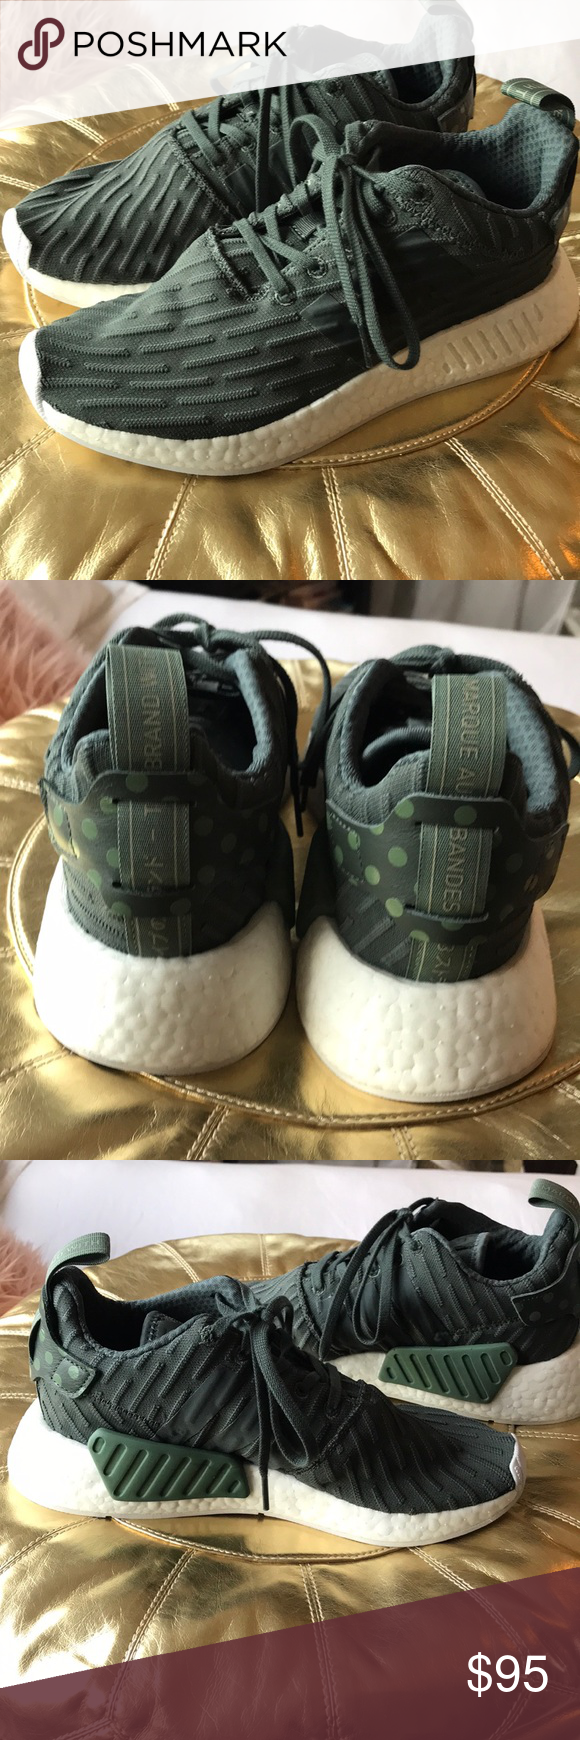 e642abc4f2a36 Adidas women s NMD R2 shoes Worn once! Beautiful Adidas NMD sneaker in  green with polka dot detail on back. Size 8. Primeknit upper with Boost  foam bottom.